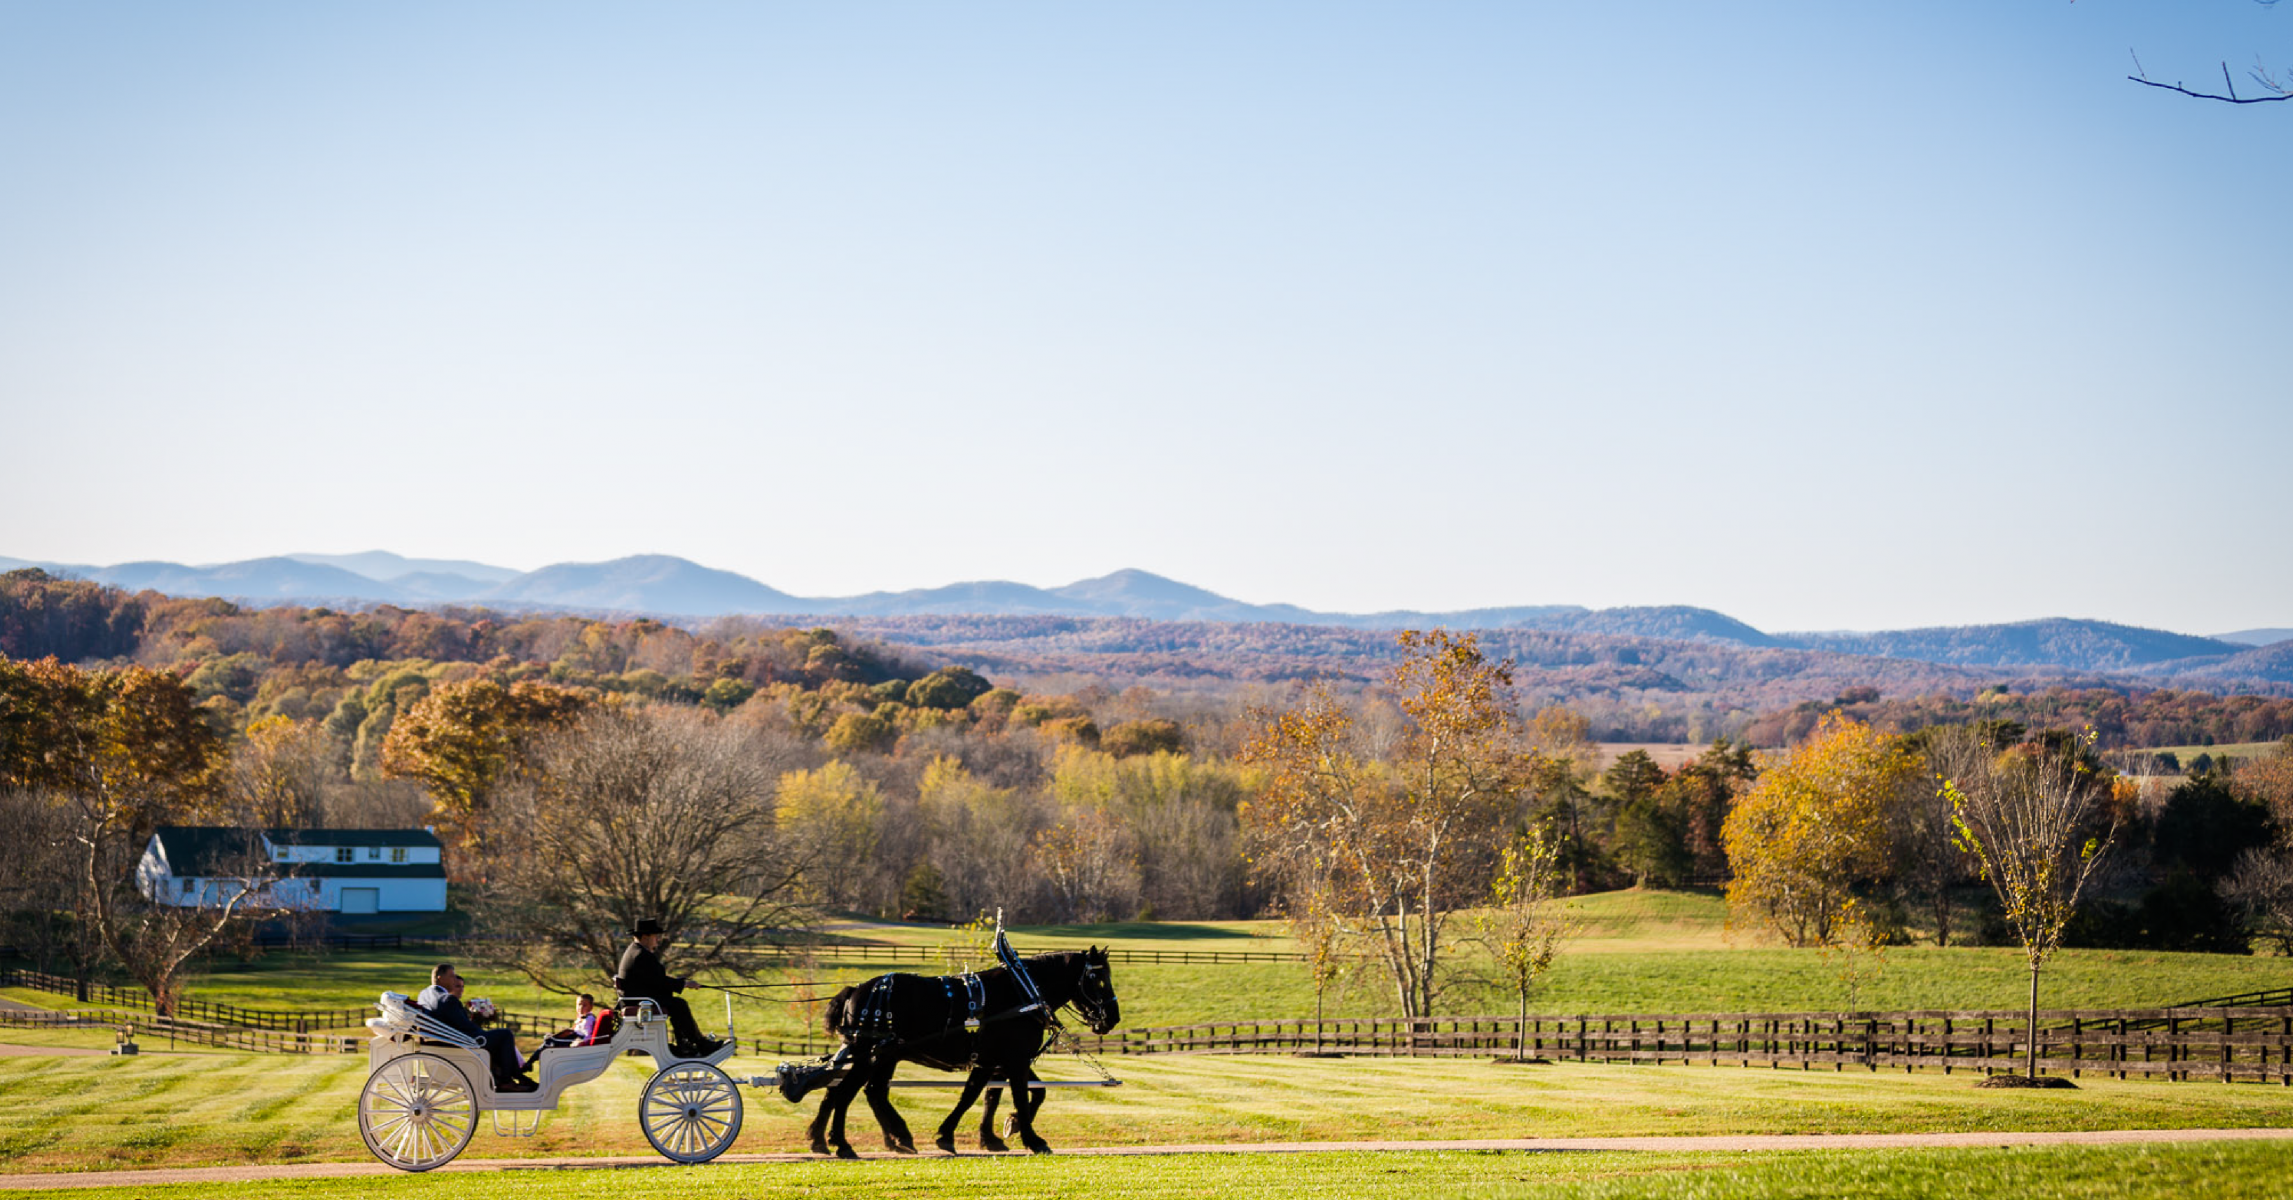 Bride and Groom Recess in Horse and Carriage against mountain backdrop at Mount Ida Farm and Vineyard